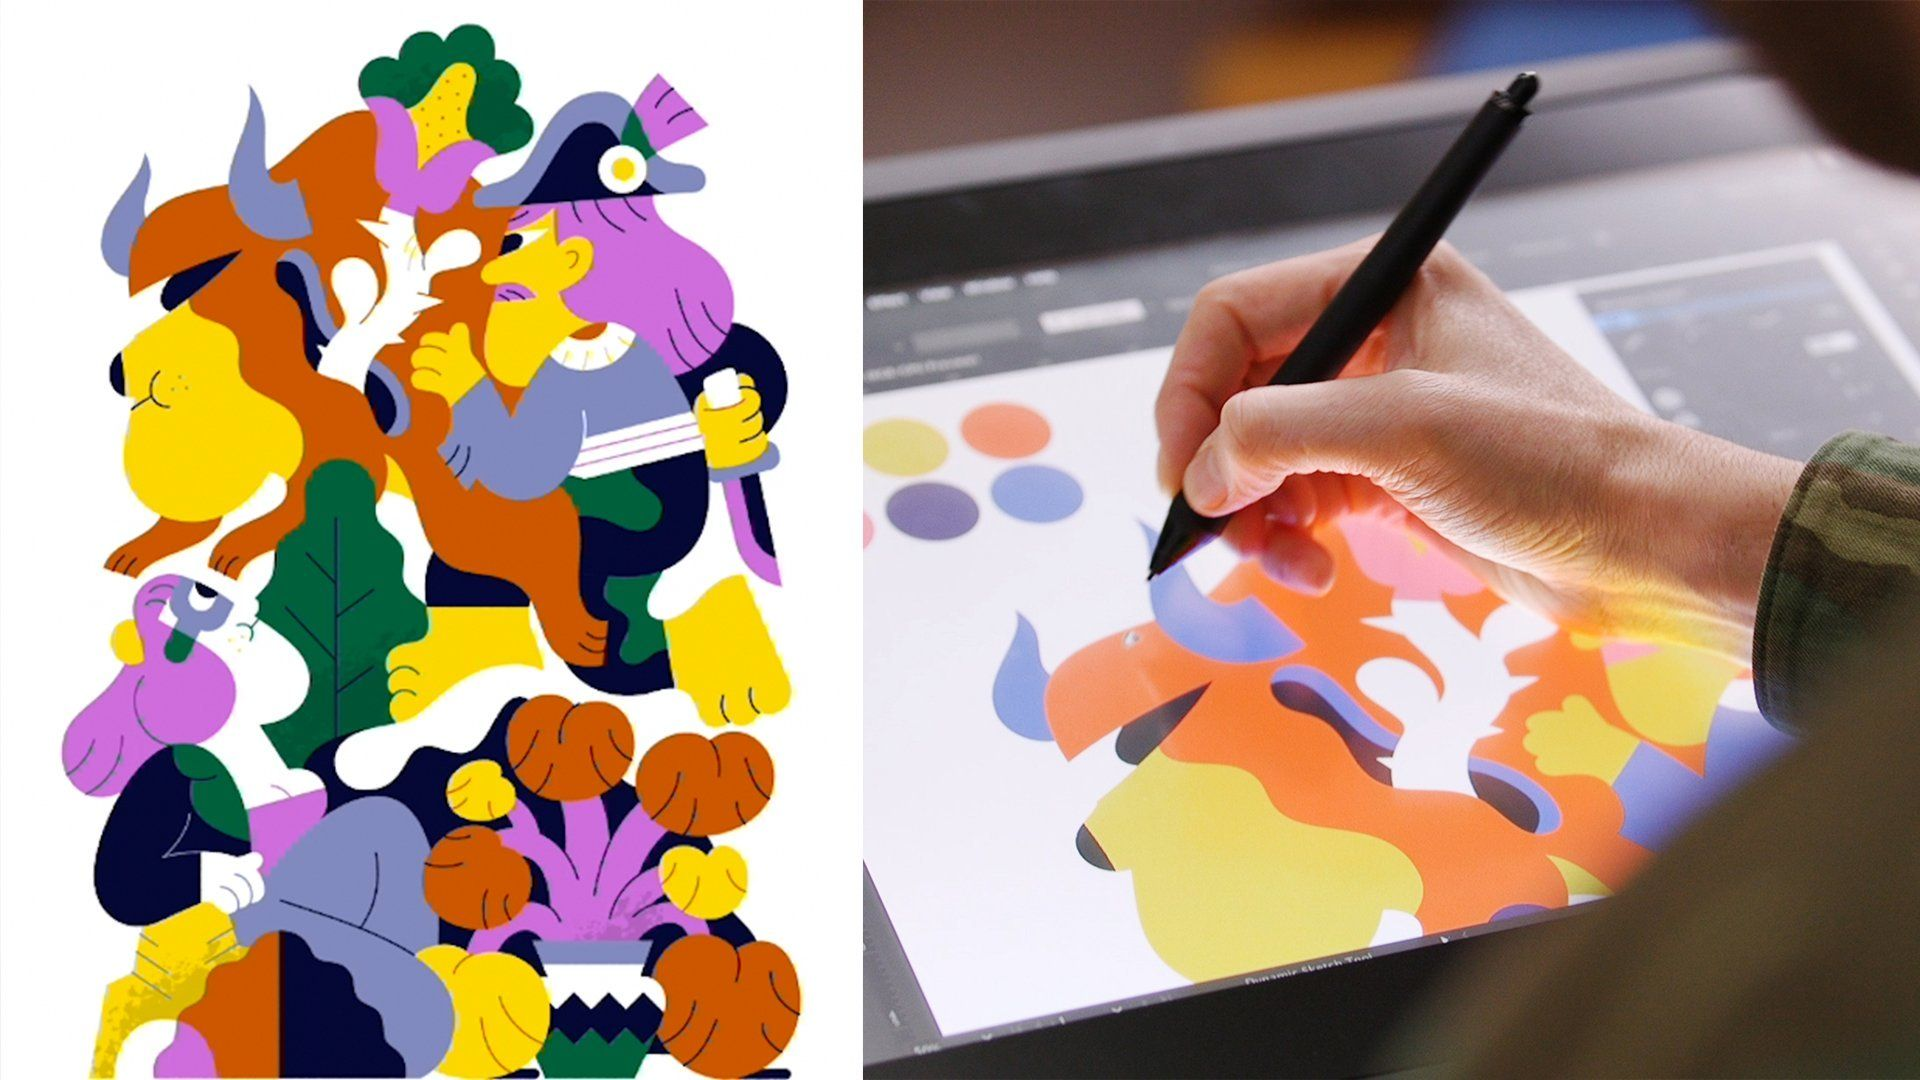 Vector Illustration Using Creative Constraints To Find Your Style